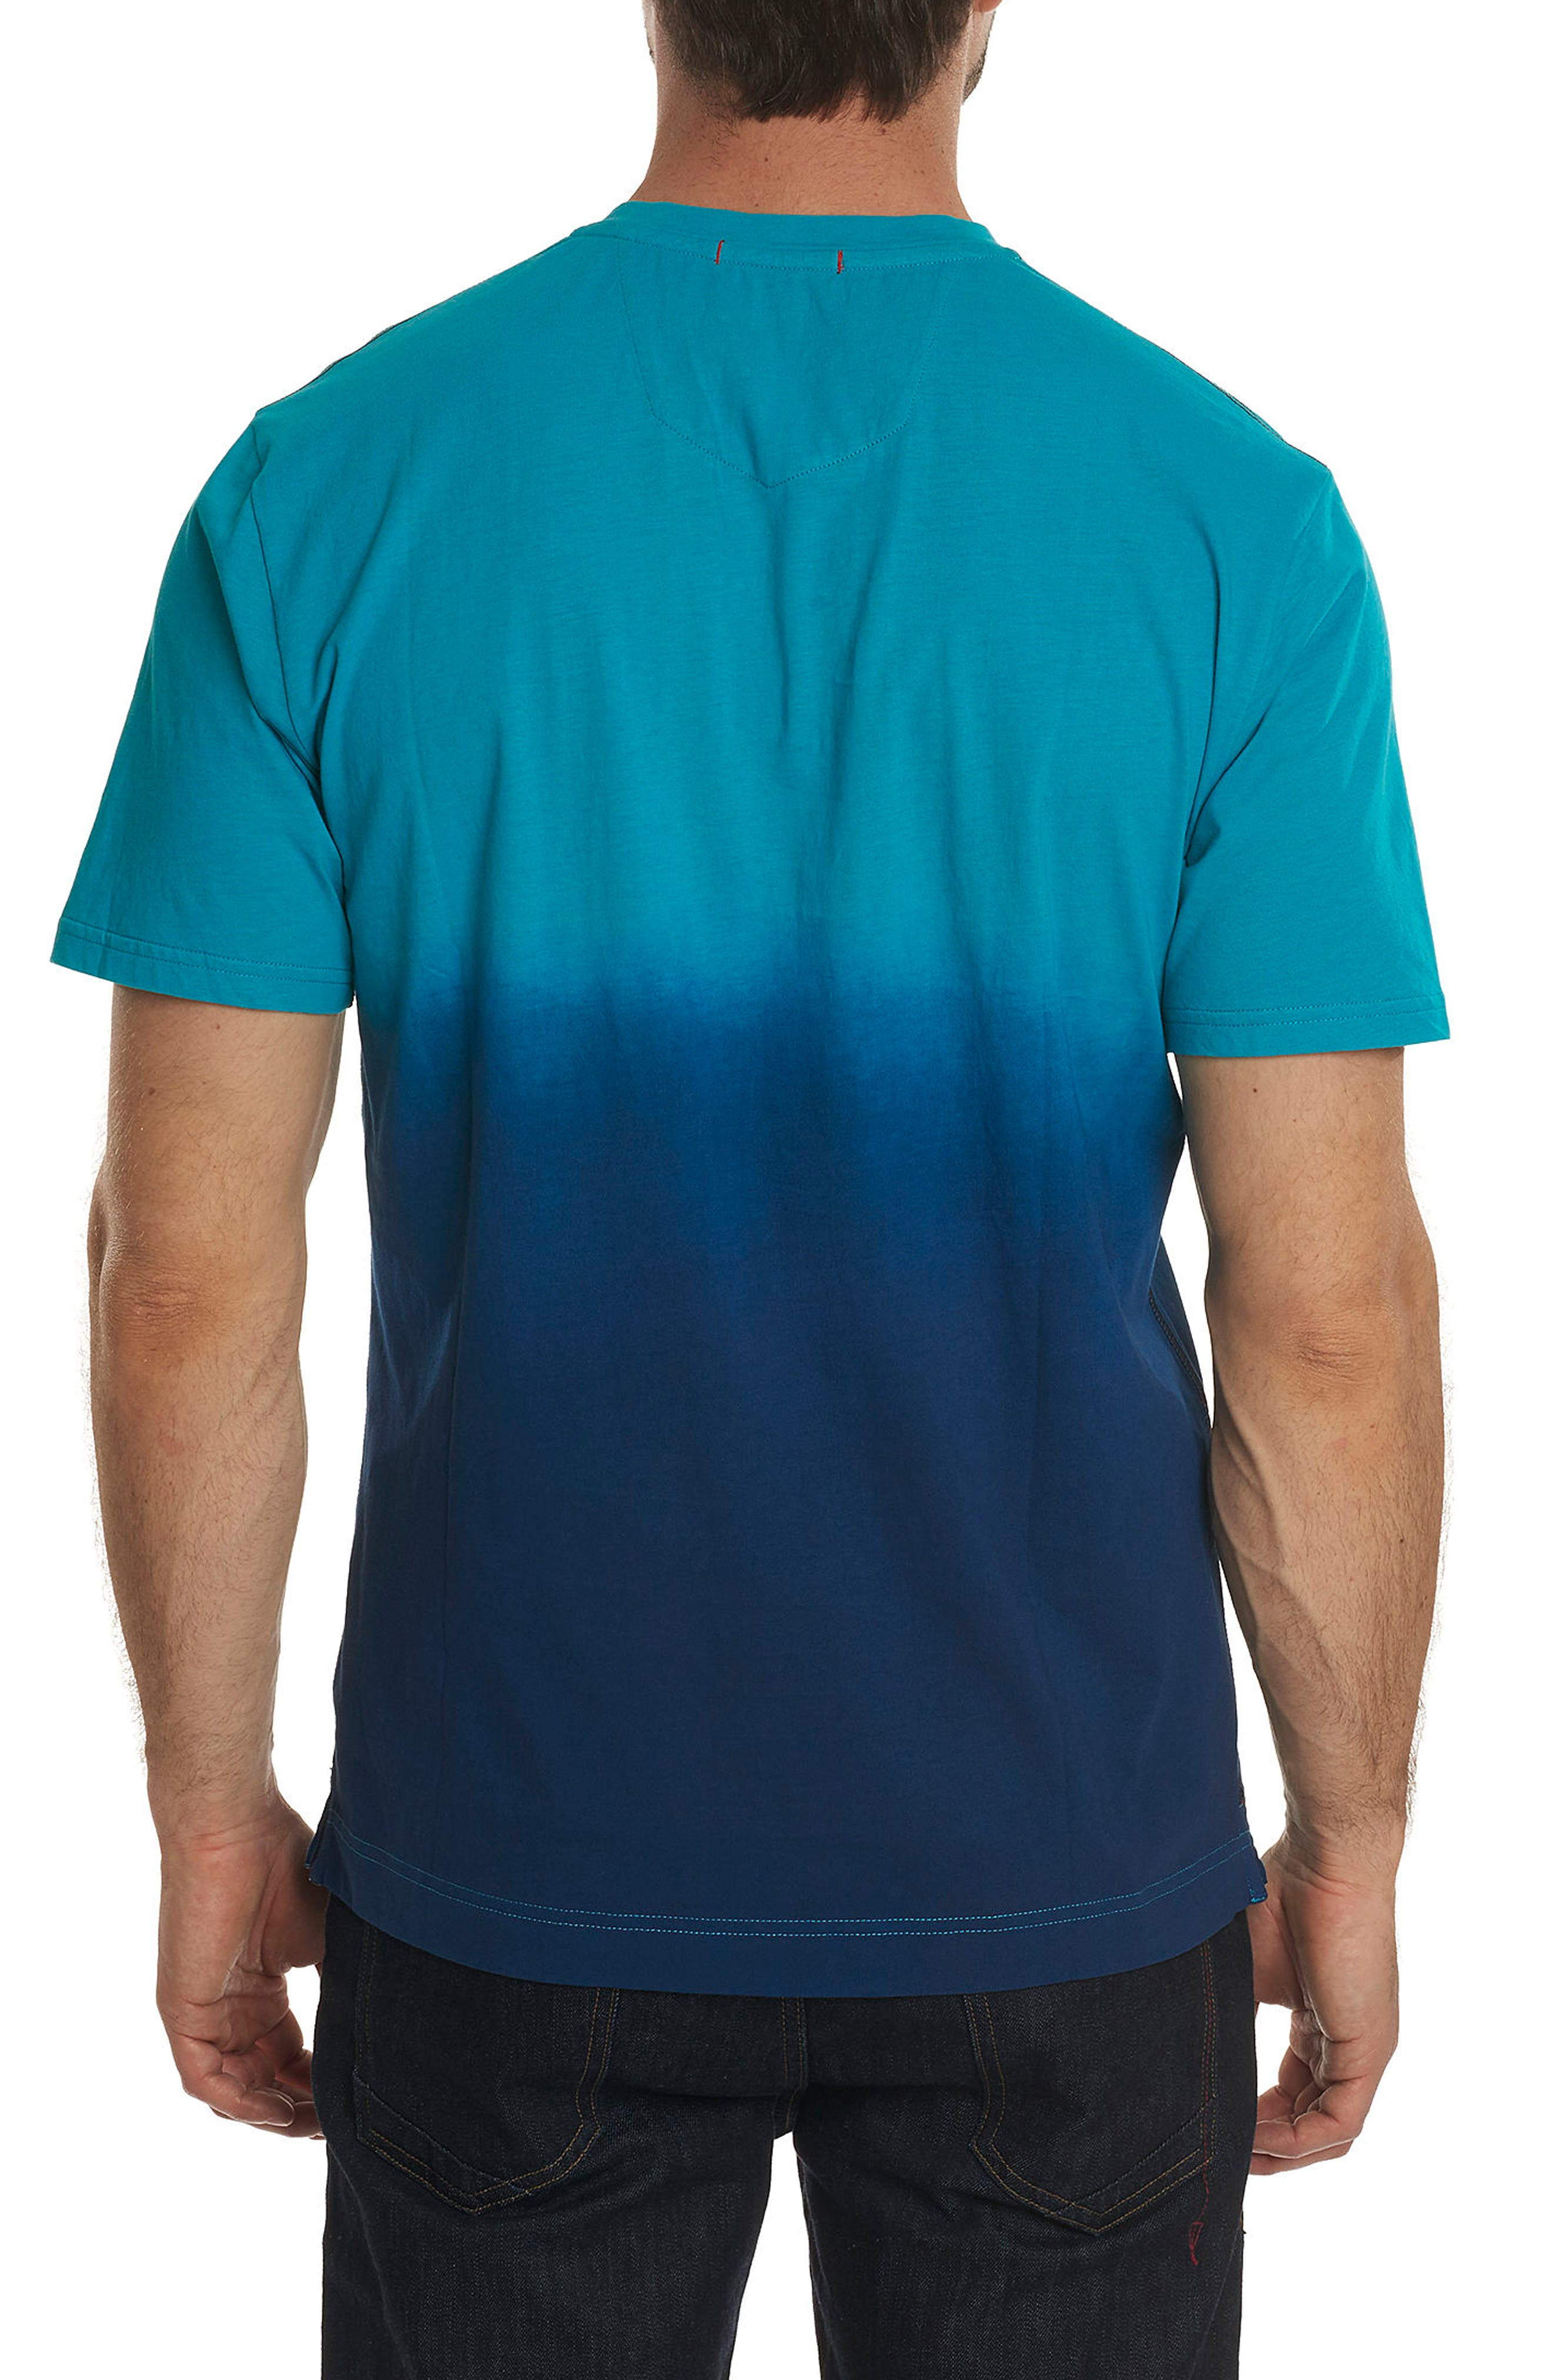 Into the Wind Knit Graphic T-Shirt,                             Alternate thumbnail 2, color,                             Teal